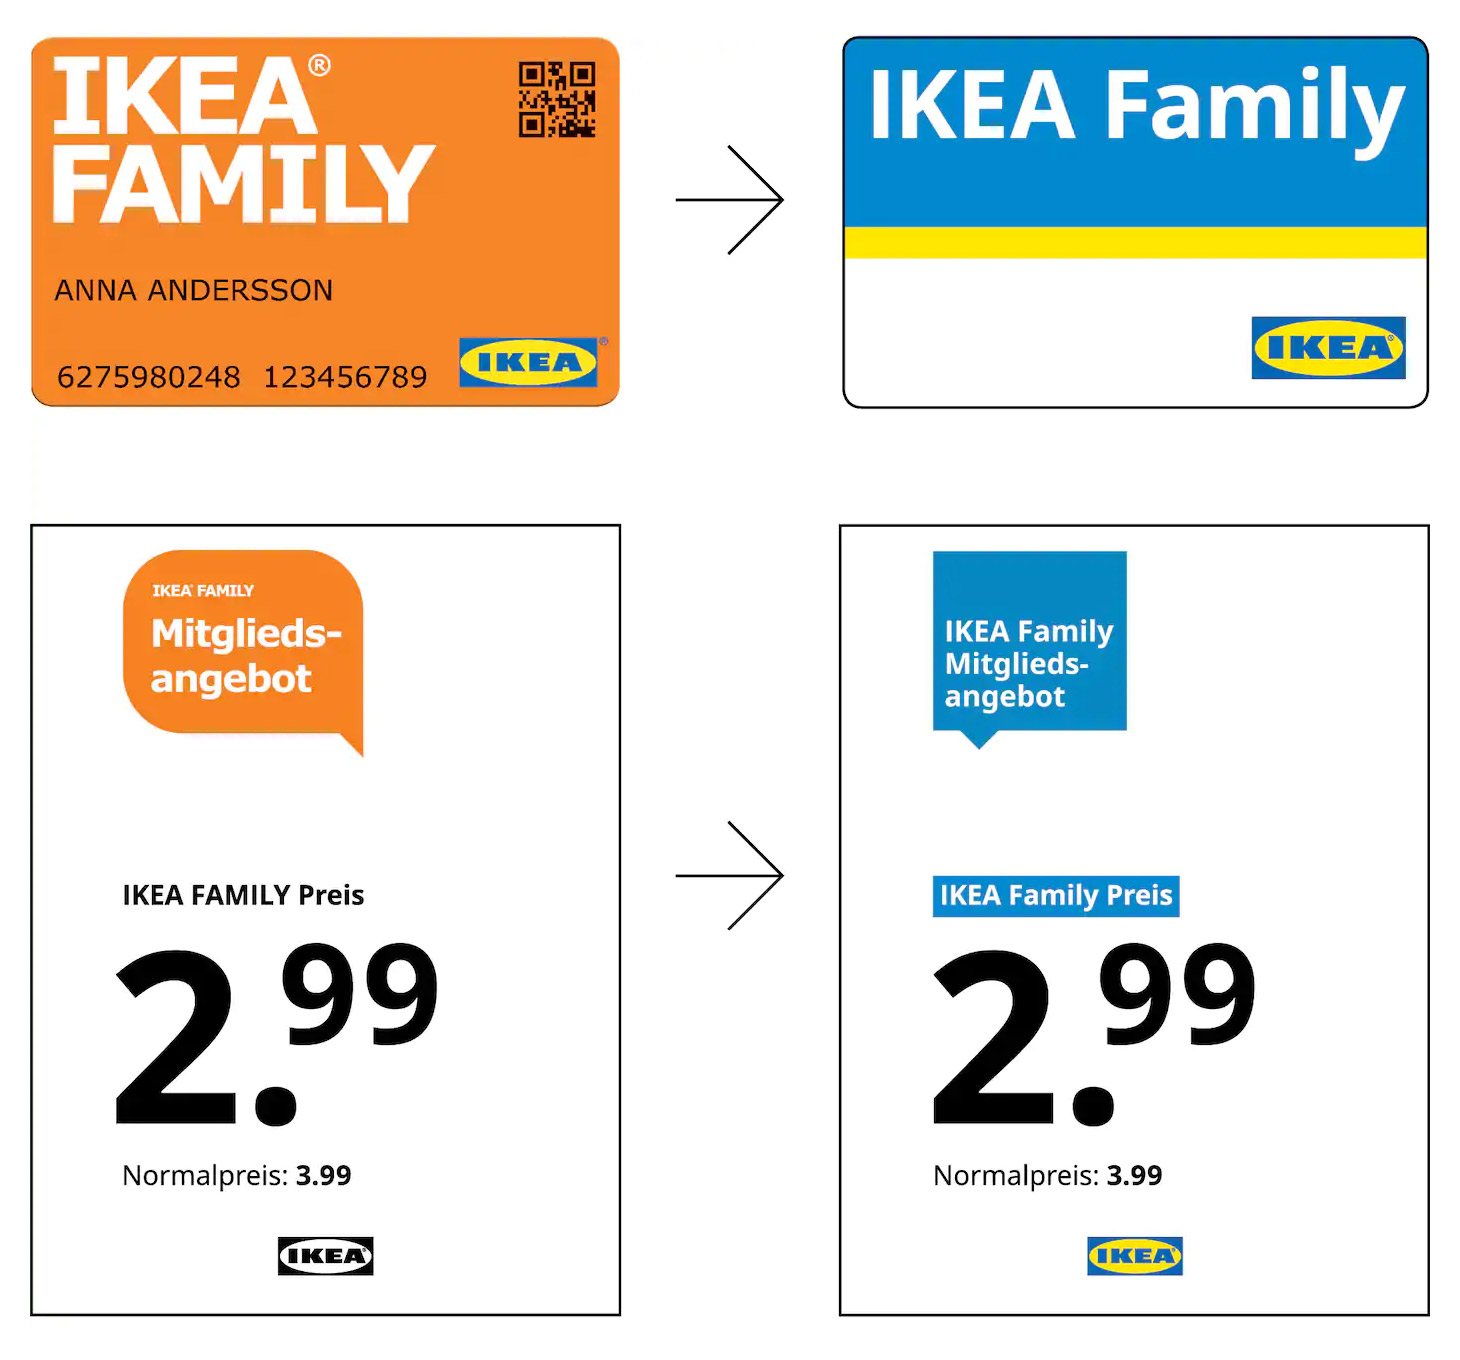 IKEA Family Redesign, Quelle: IKEA